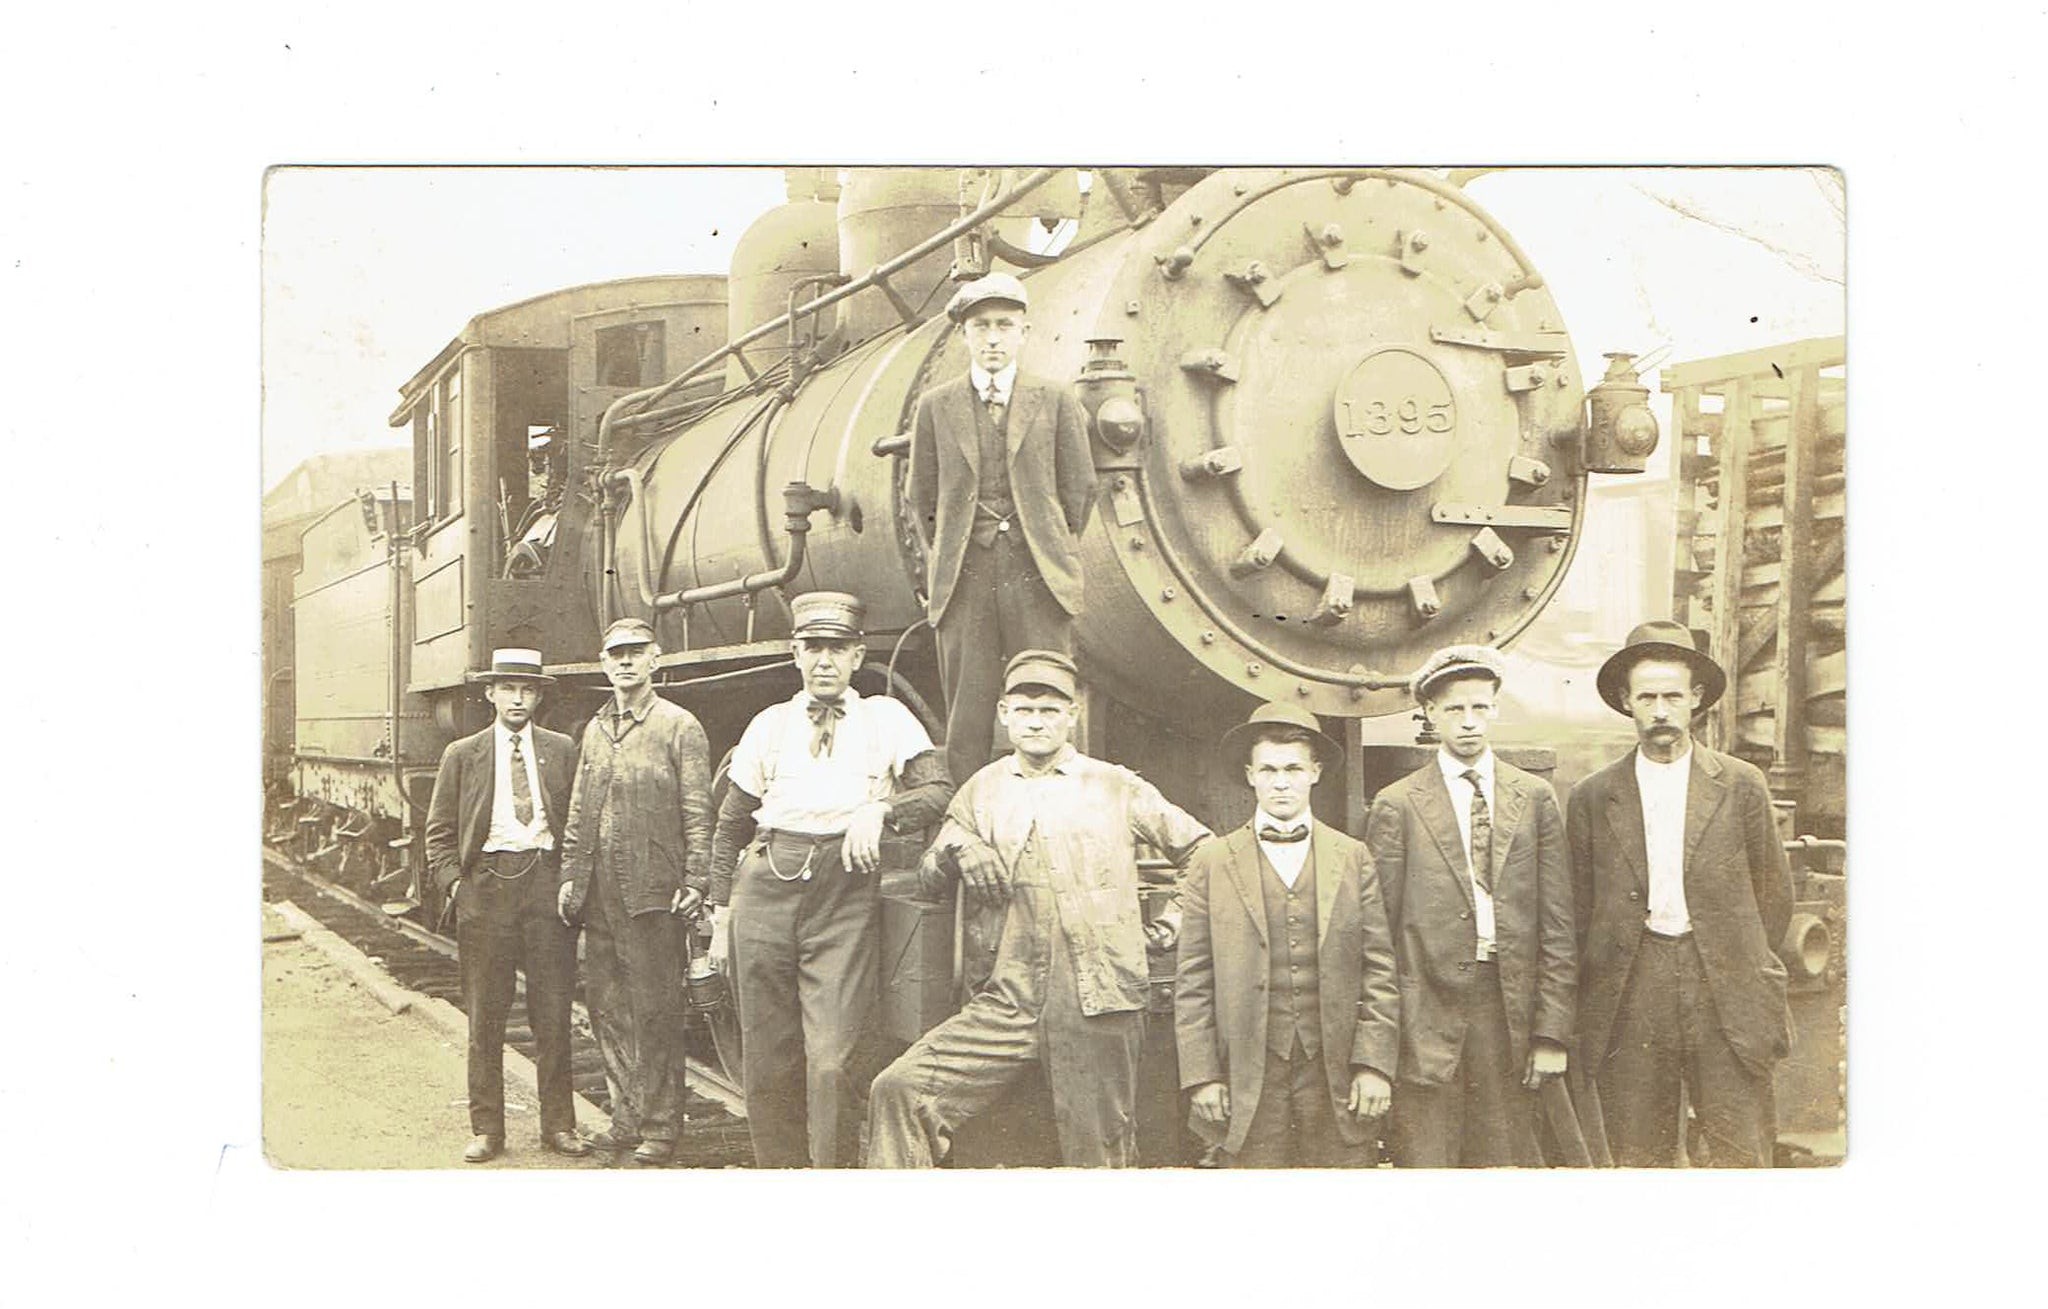 Railway Train Engine And Crew. Postcard